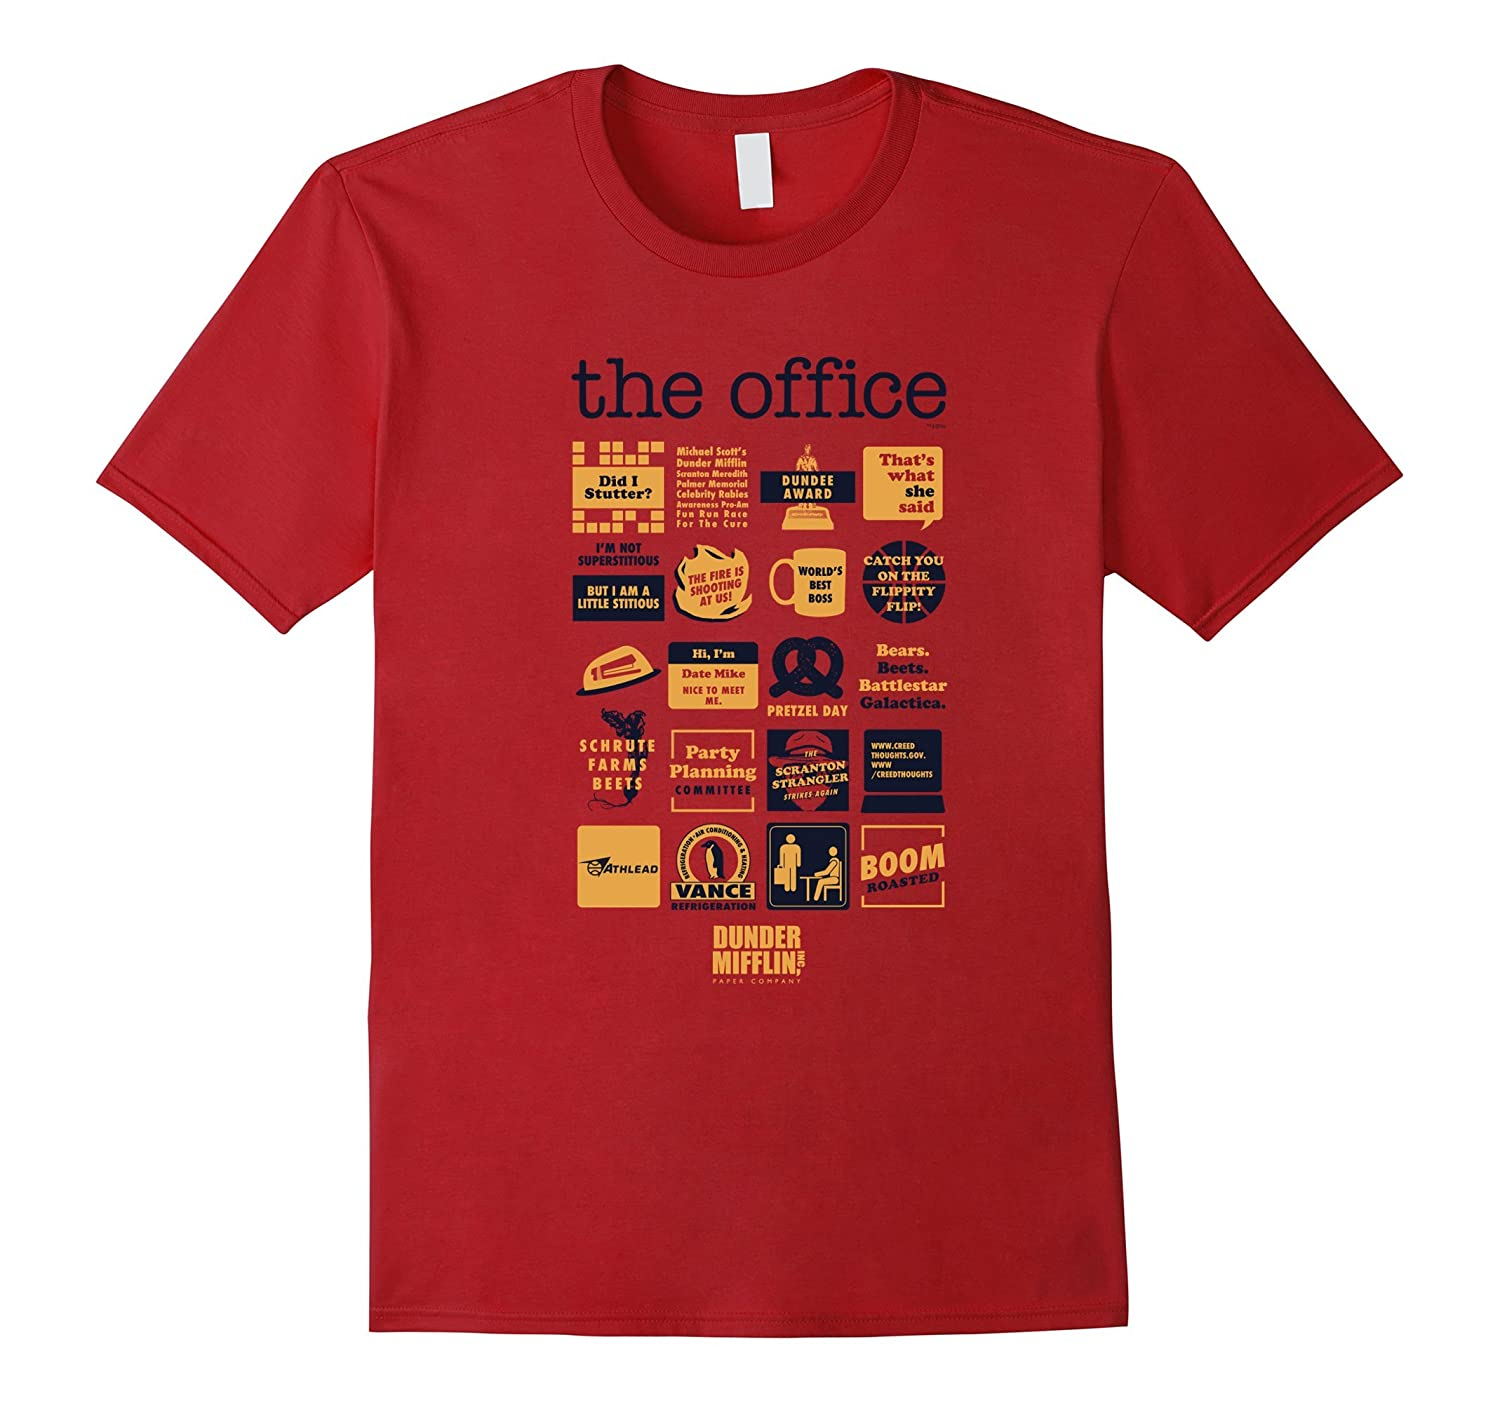 The Office Quote Mash-Up Funny T-Shirt - Official Tee-ah my shirt one gift